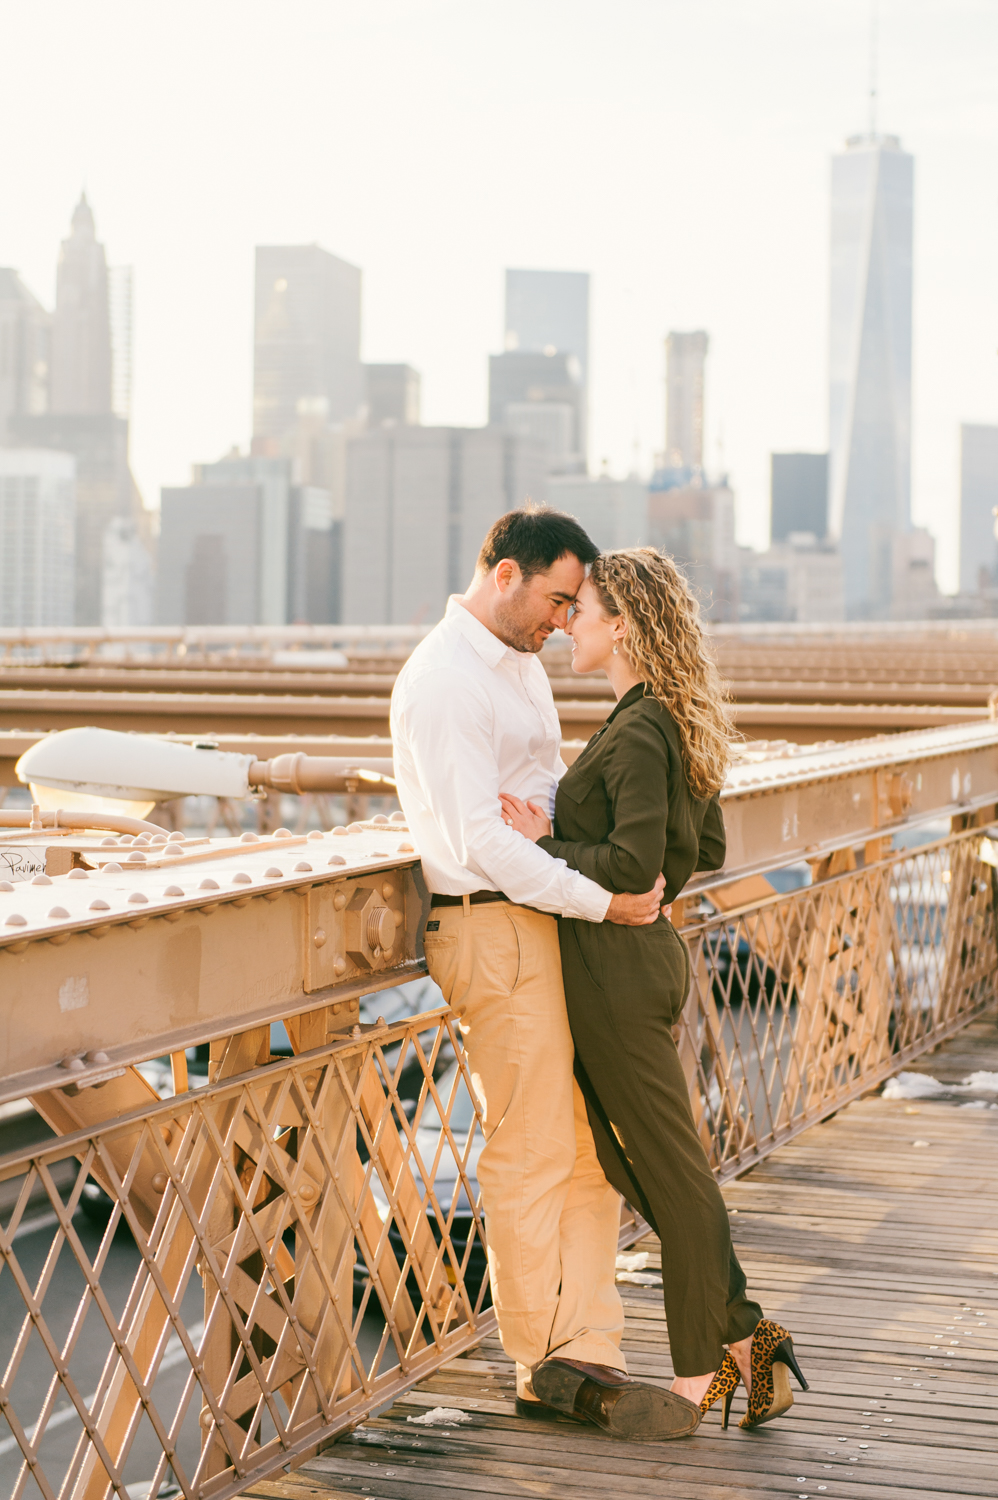 DUMBO.BrooklynBridgePark.FineArtWeddingPhotographer.KatHarris10.jpg